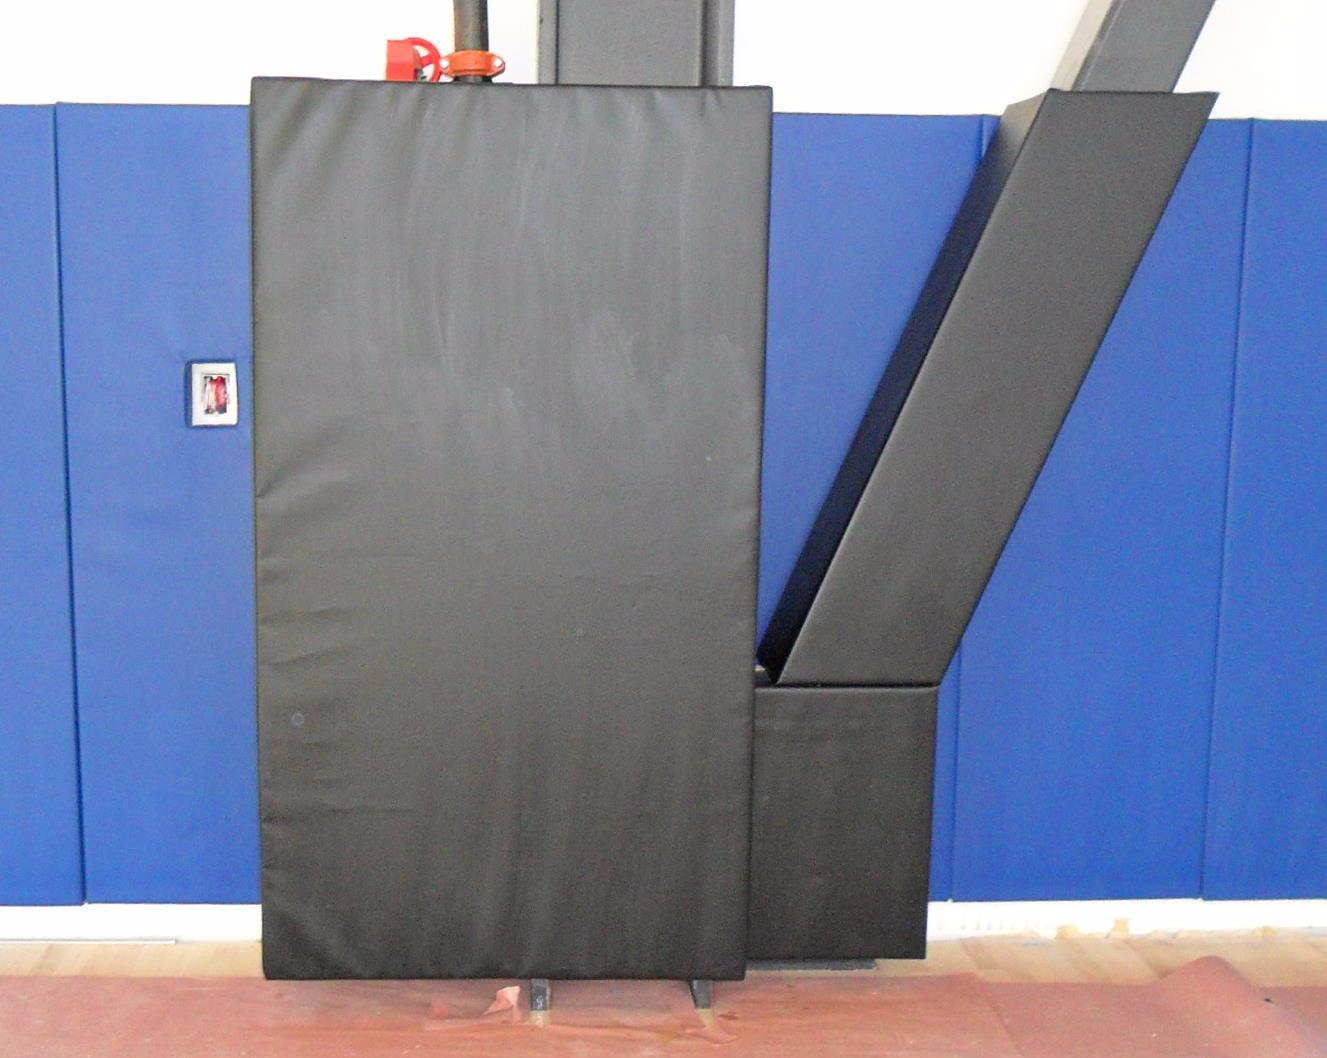 Wall Pads - Post Pads - Column Pads